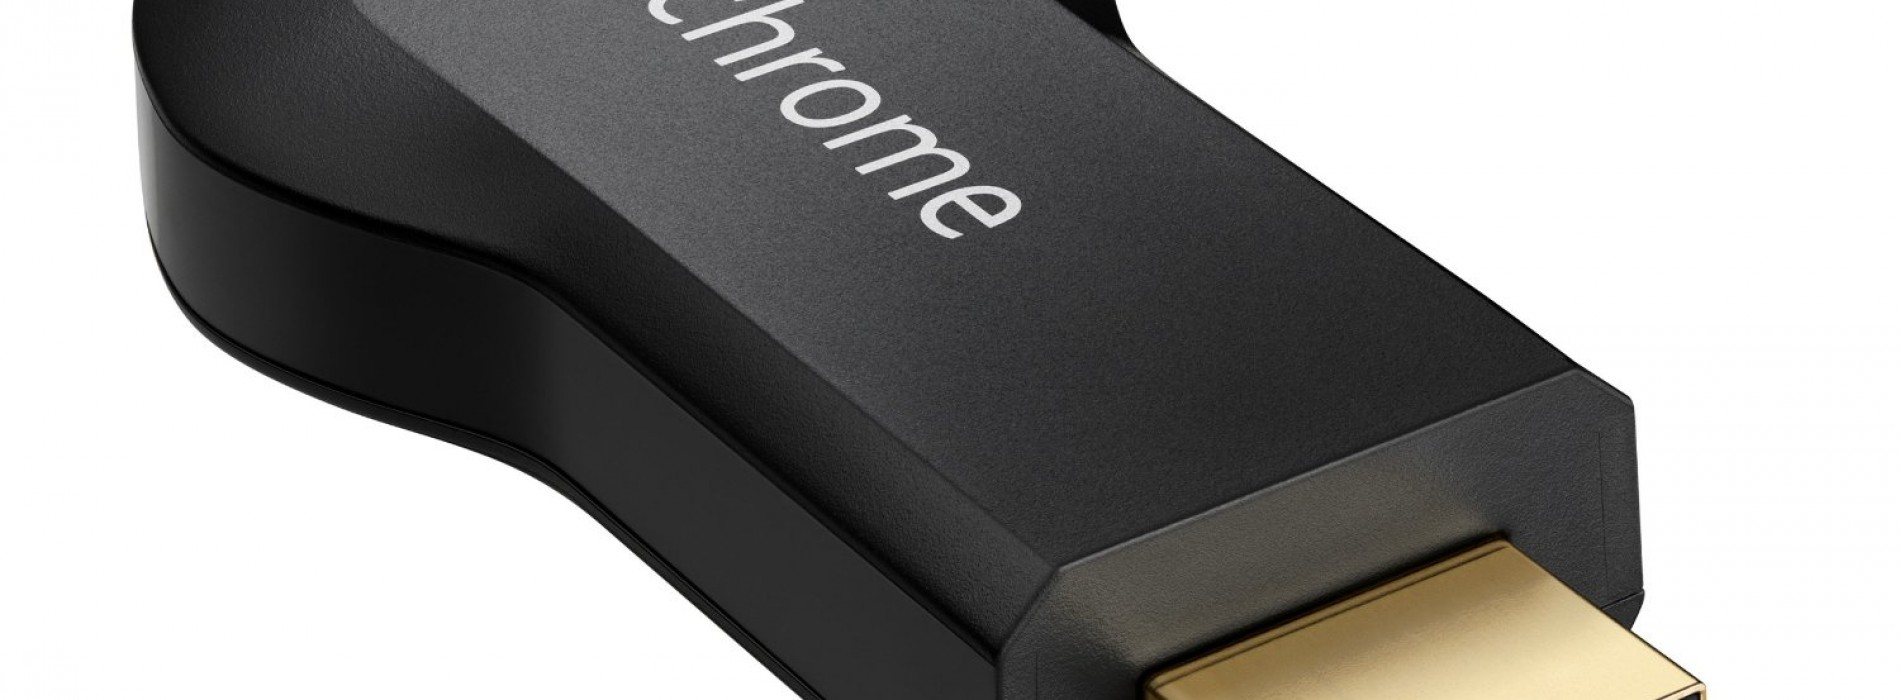 Reminder – Free 90 days access to Google Play music with purchase of Chromecast